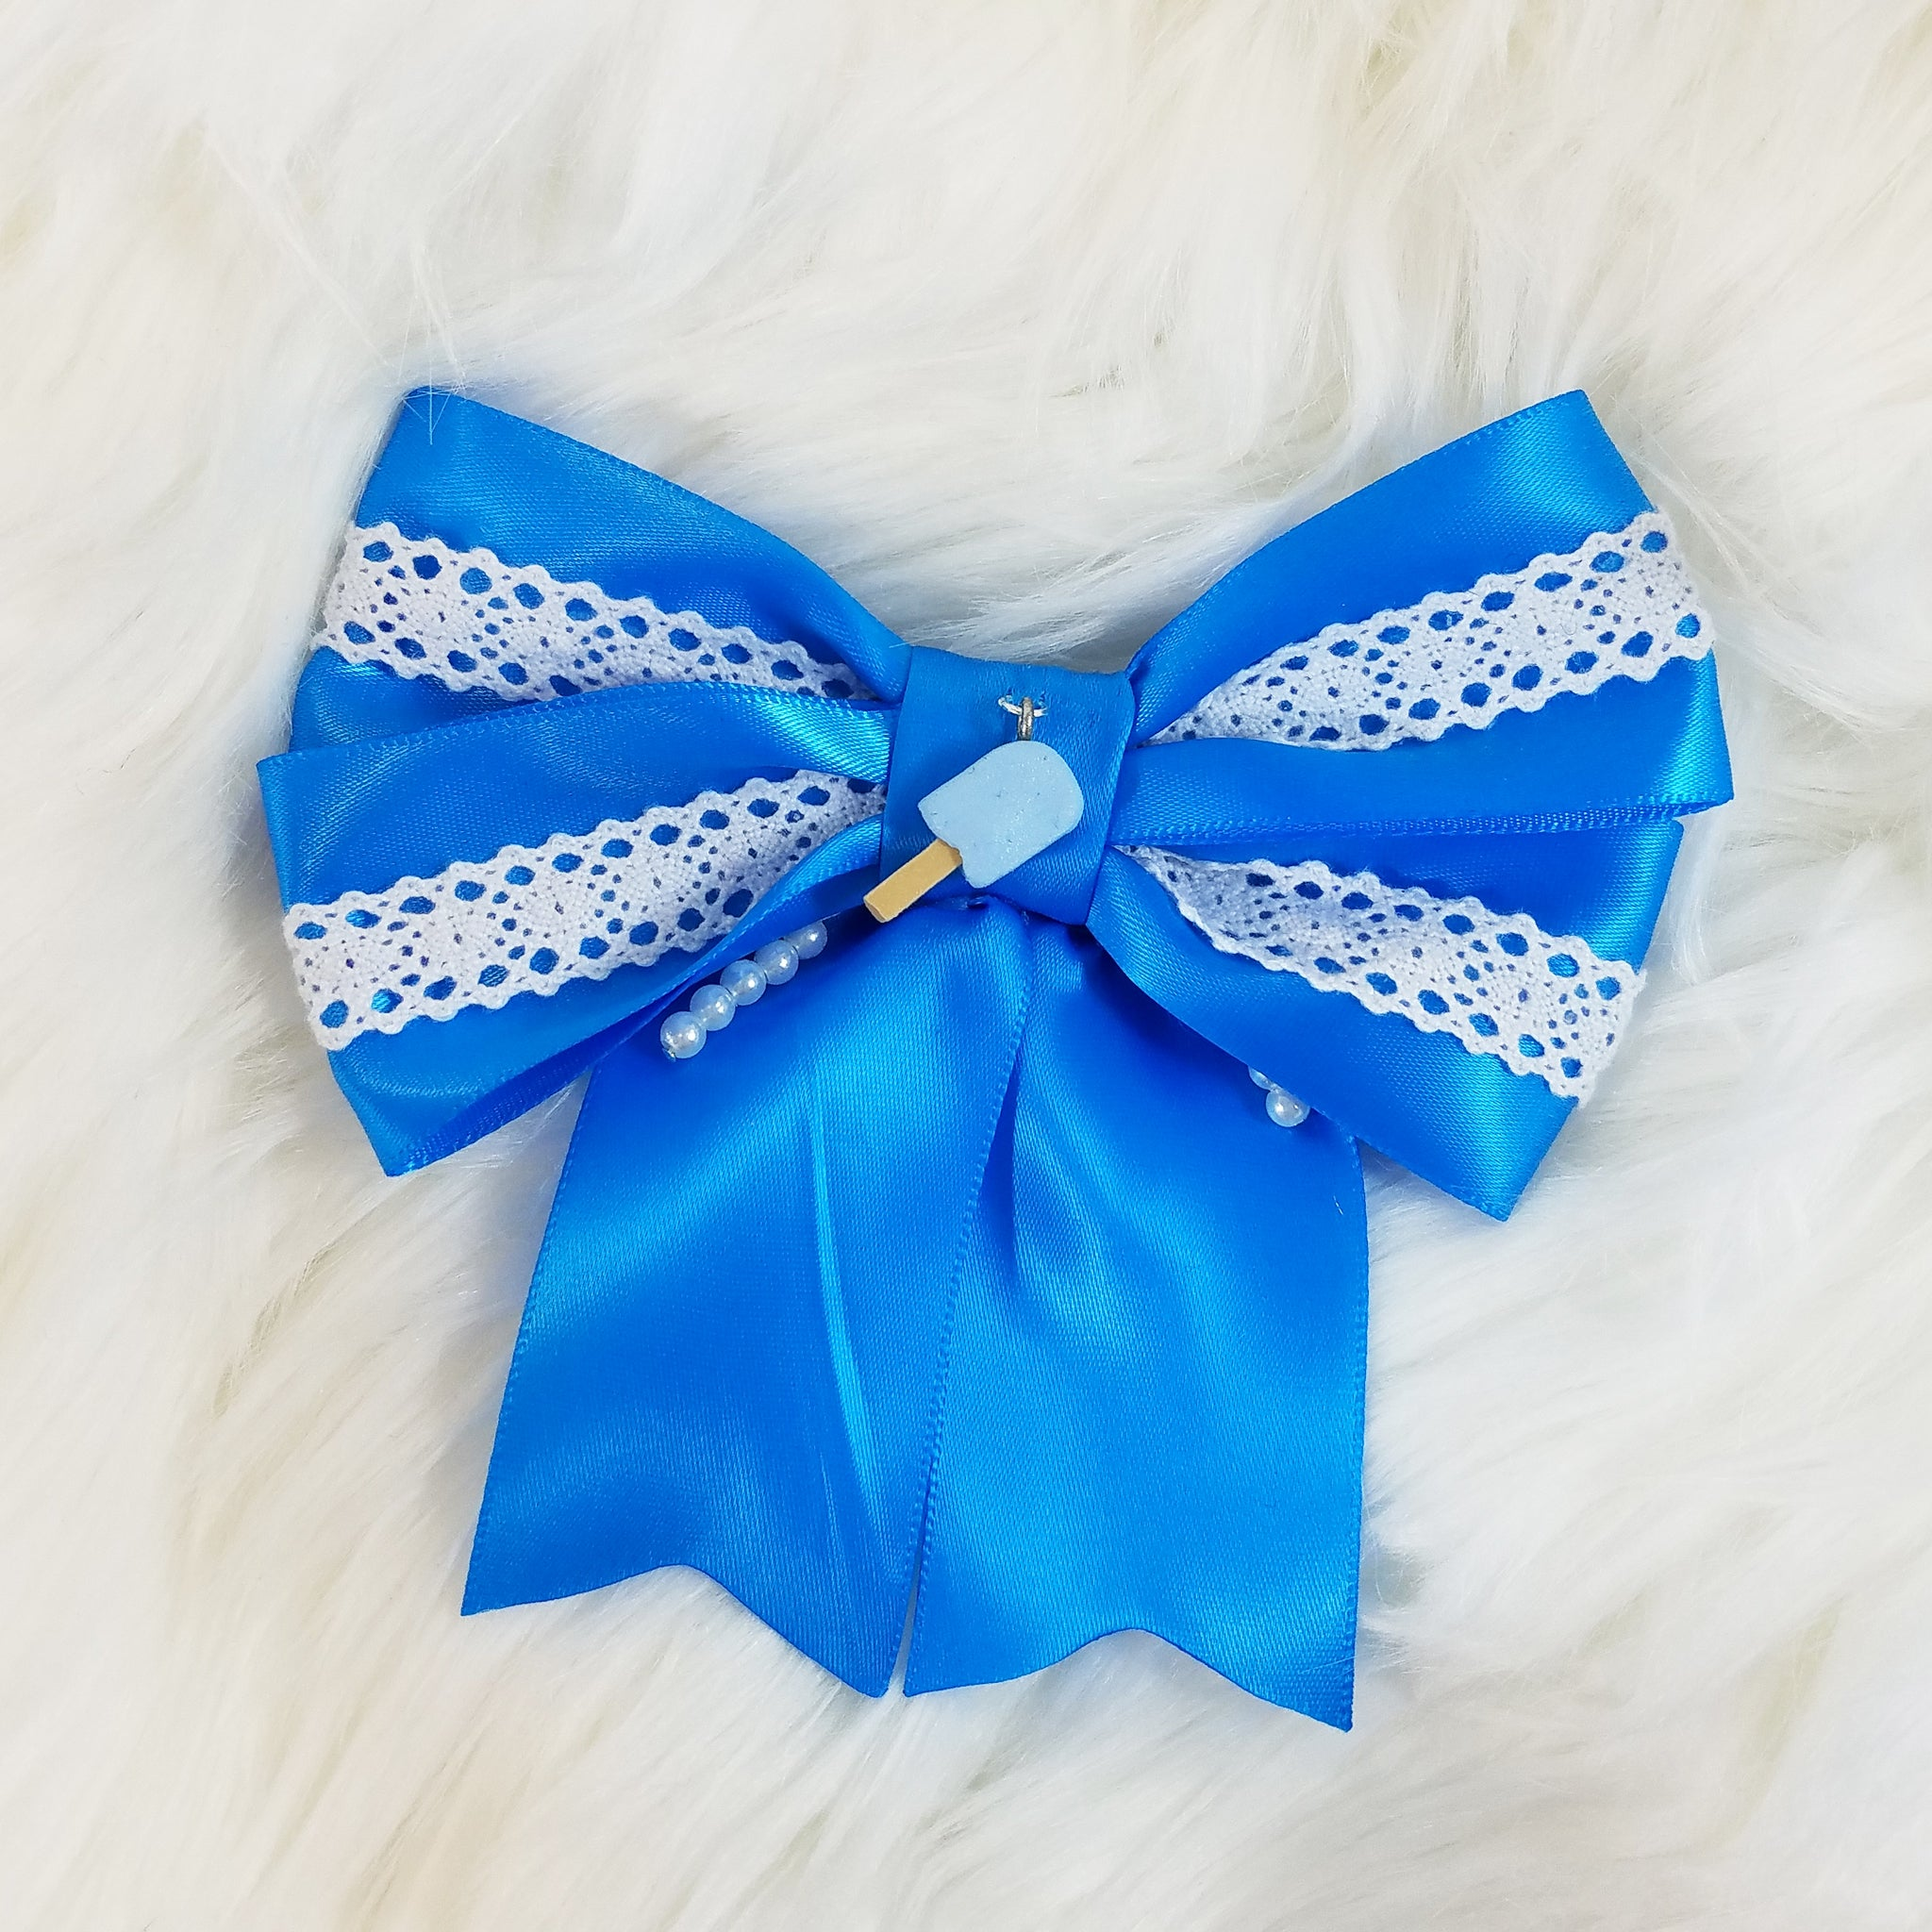 Sea Salt Memories Hair Bow